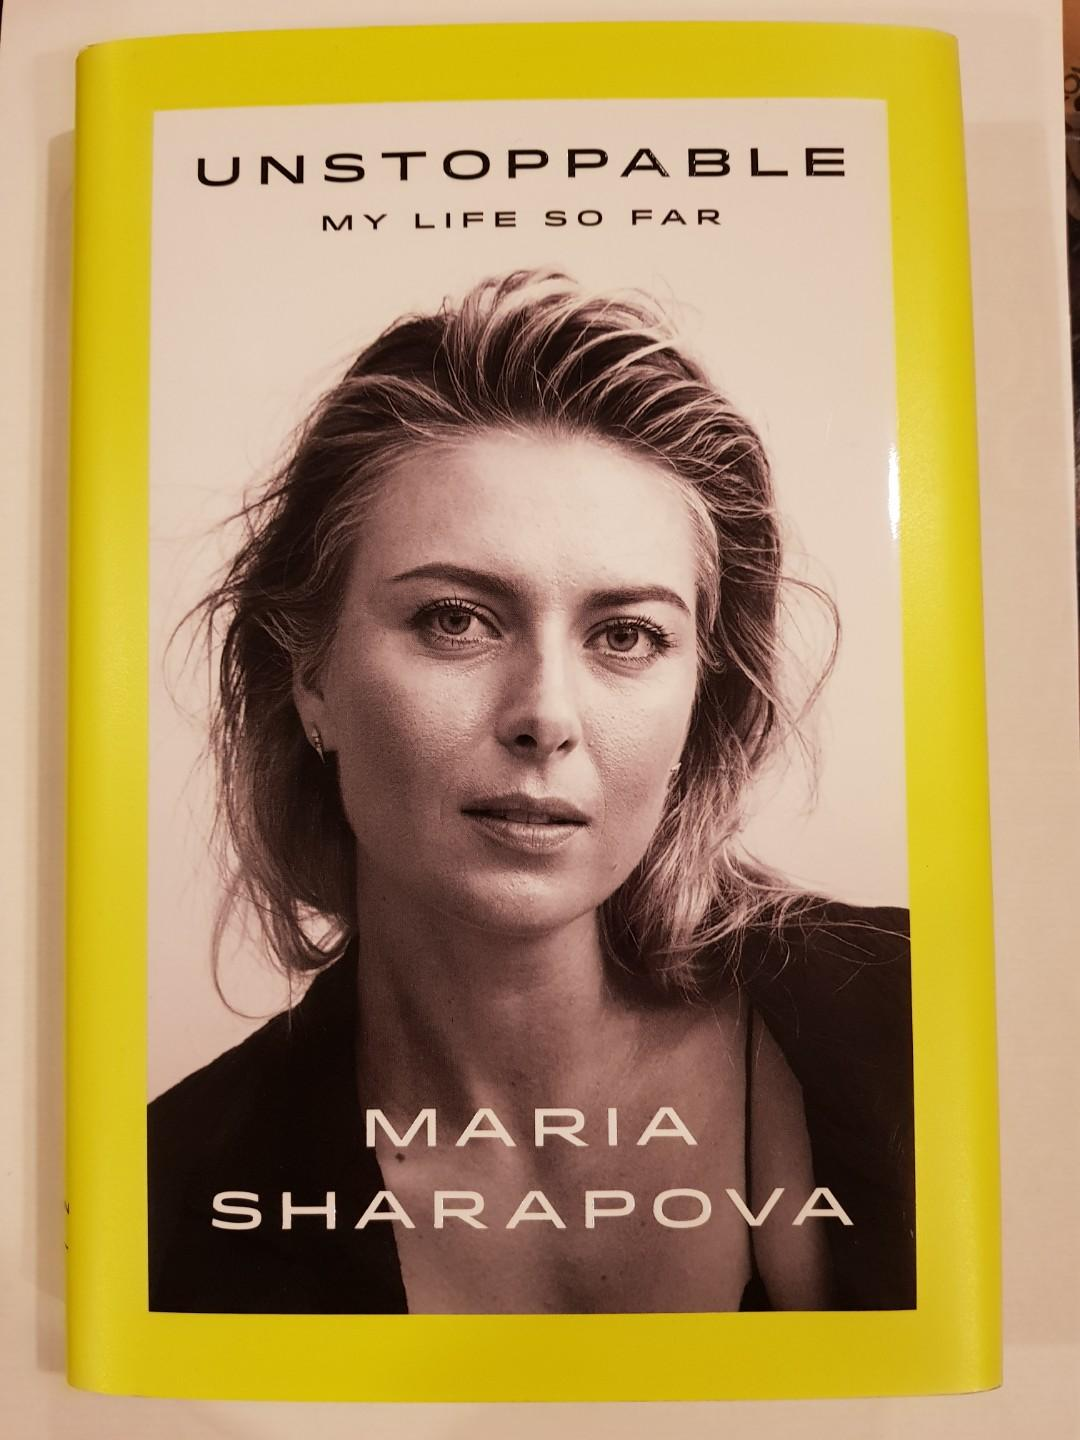 Unstoppable: My Life So Far by Maria Sharapova, former world #1 tennis player, Signed Book, brand new!